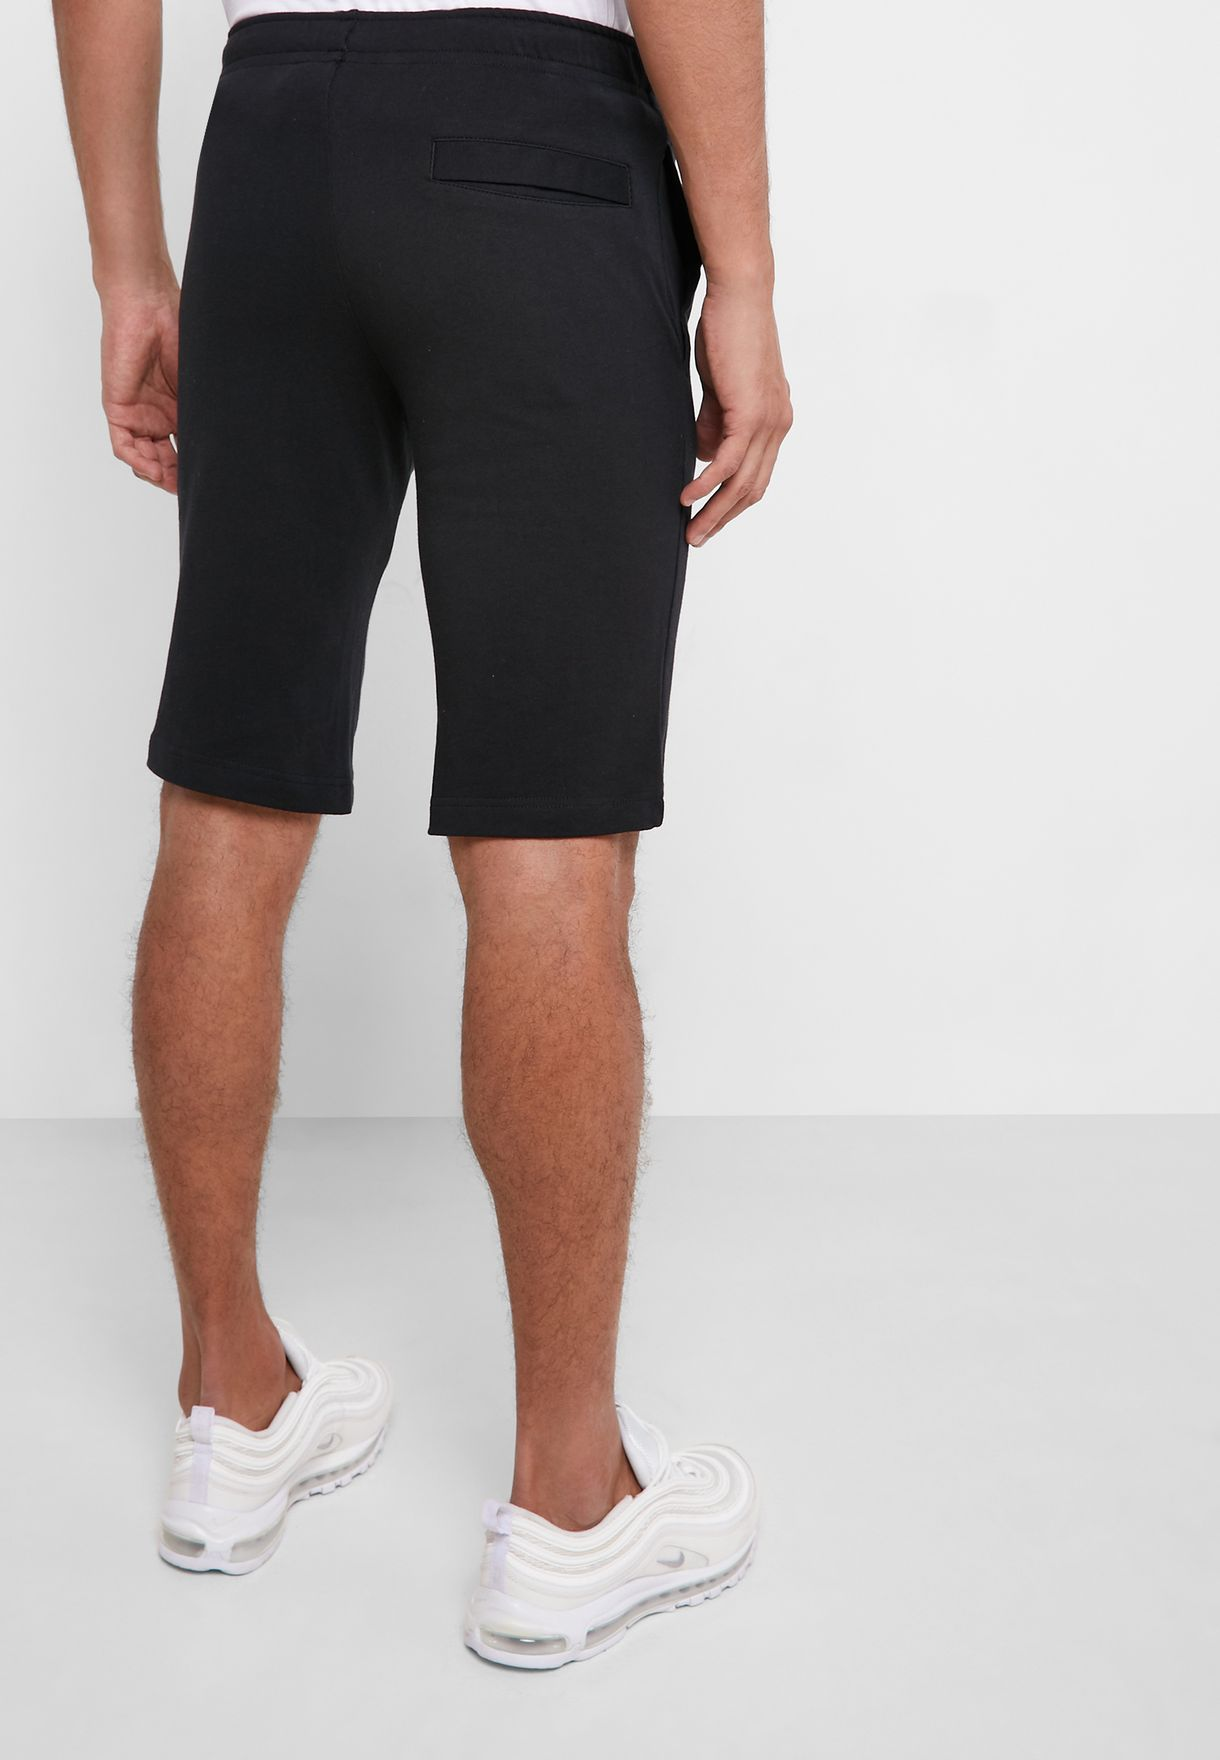 Club Jersey Shorts